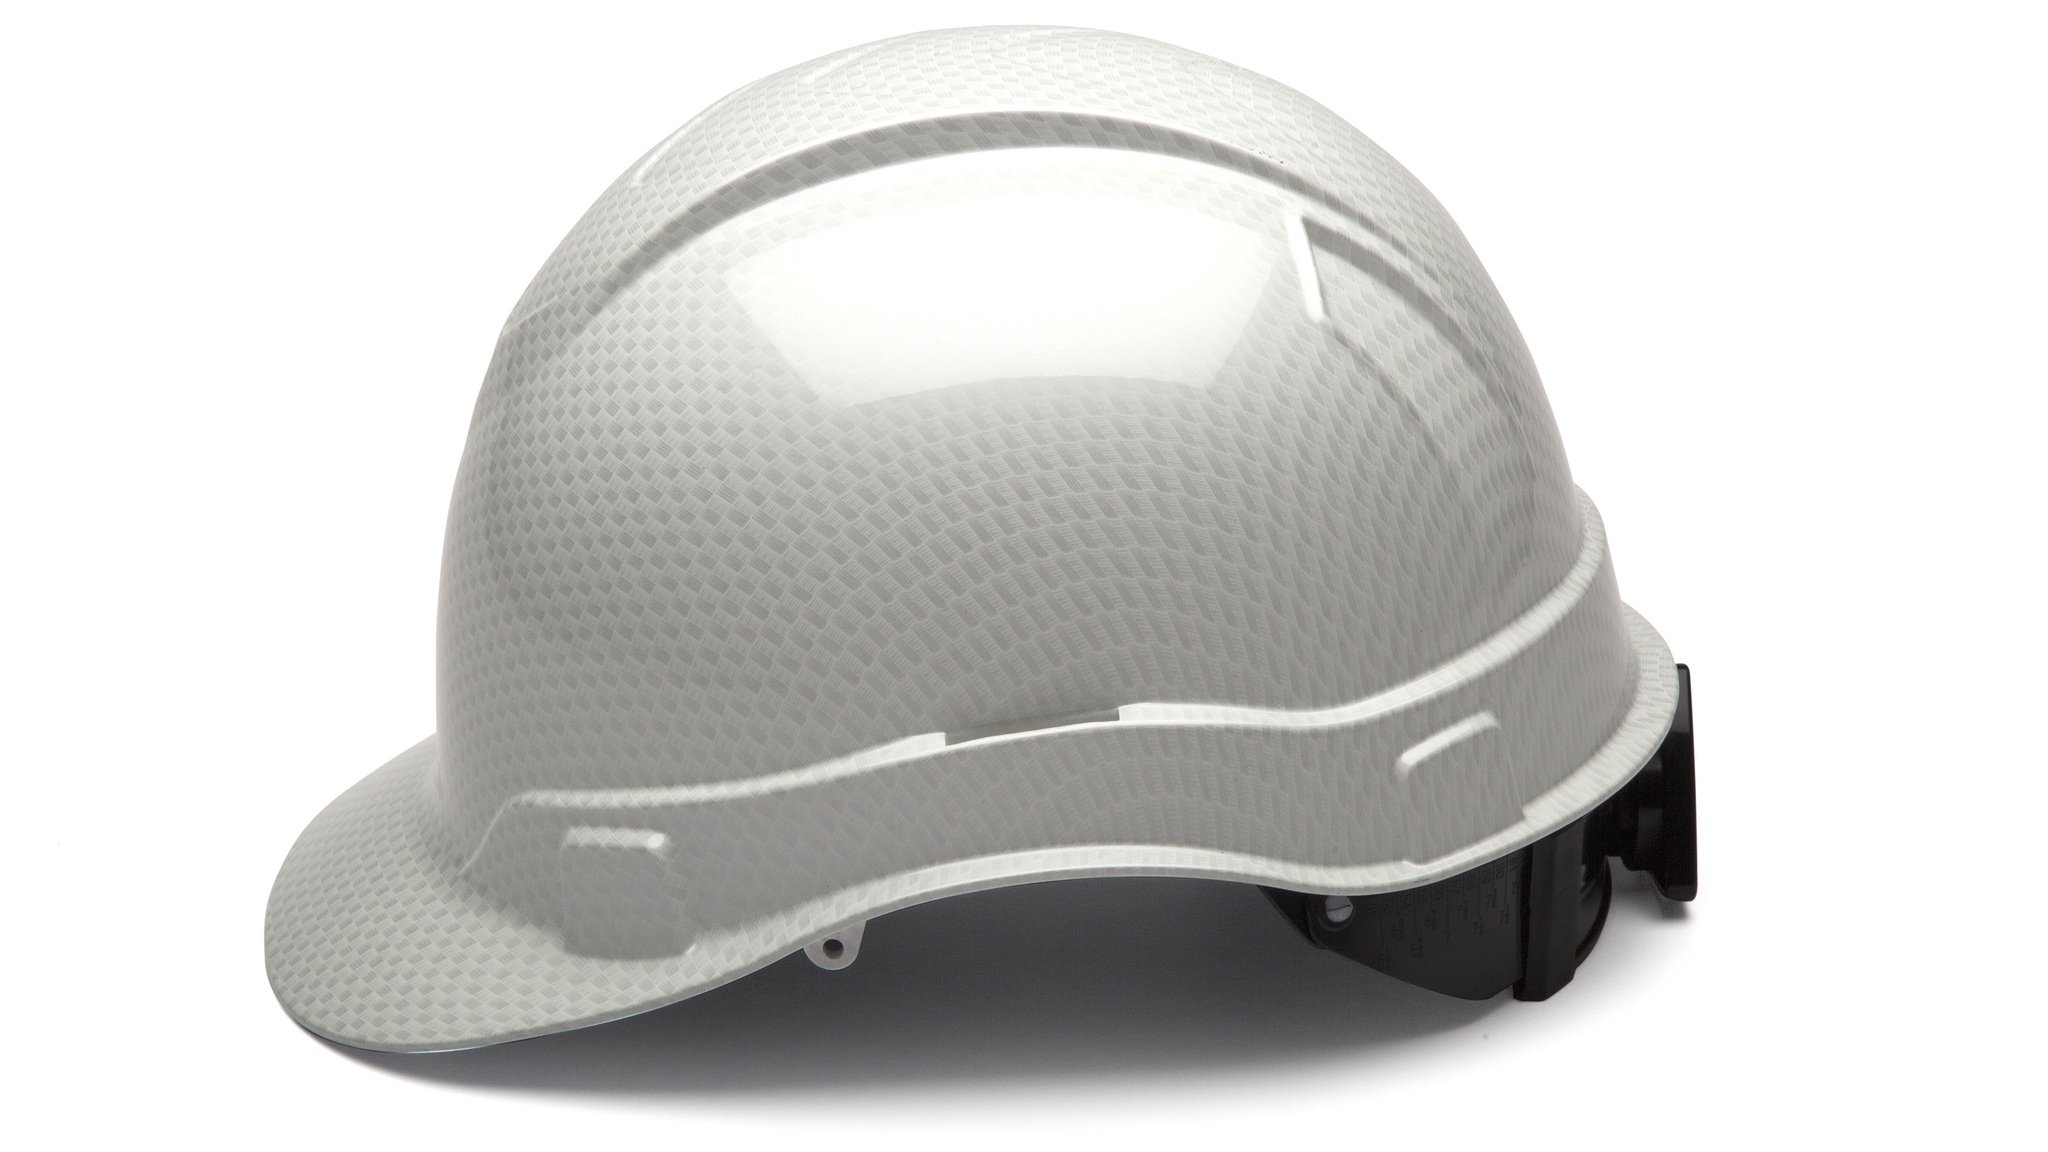 Cap Style Hard Hat, Adjustable Ratchet 4 Pt Suspension, Durable Protection safety helmet, White Shiny Graphite Pattern Design, by Tuff America